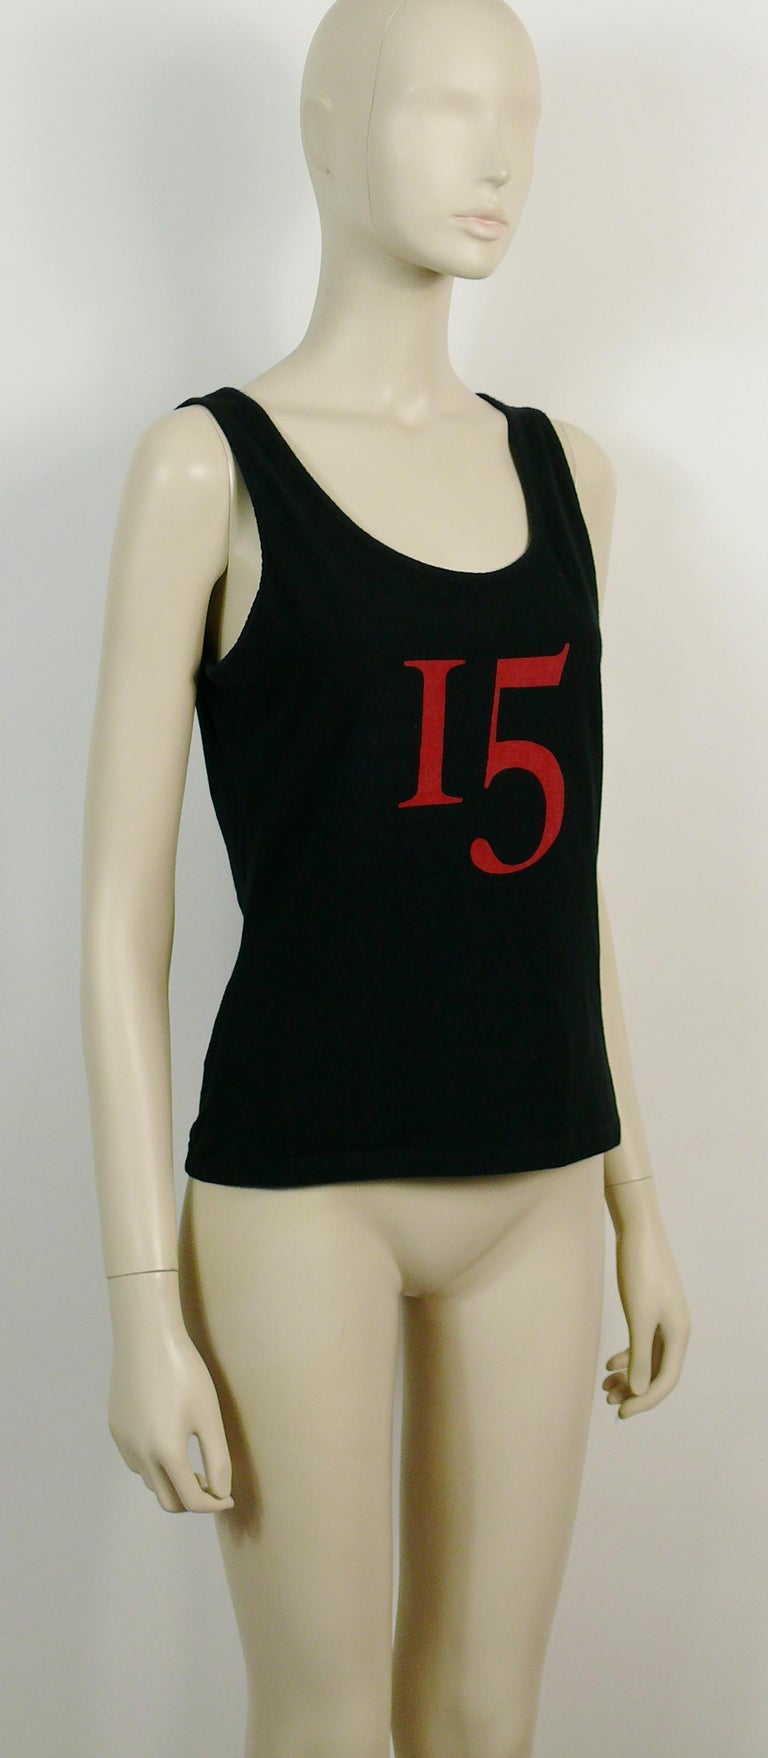 CHRISTIAN LACROIX vintage black tank top featuring an iconic large jewelled cross print on the back and a red